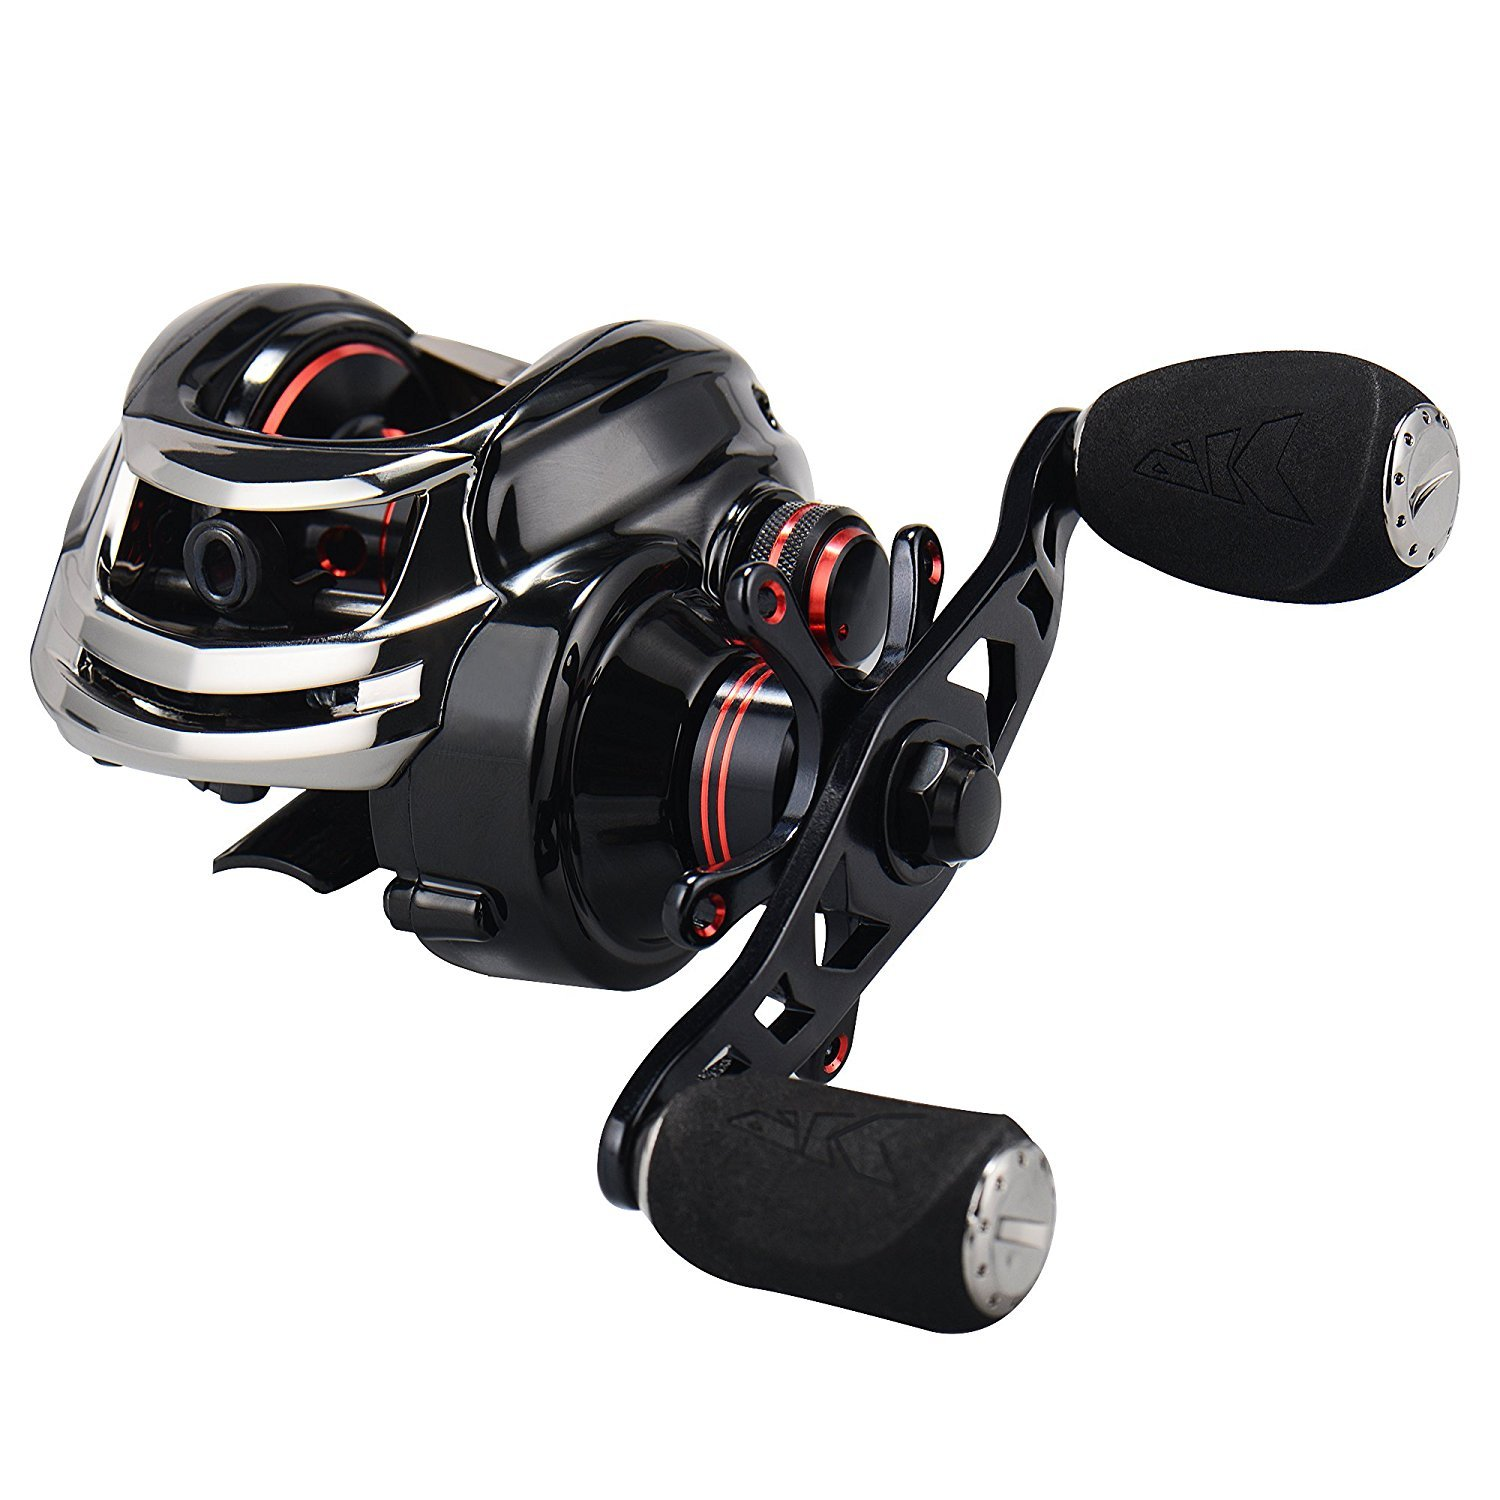 KastKing Royale Legend High Speed Profile Baitcasting Fishing Reel